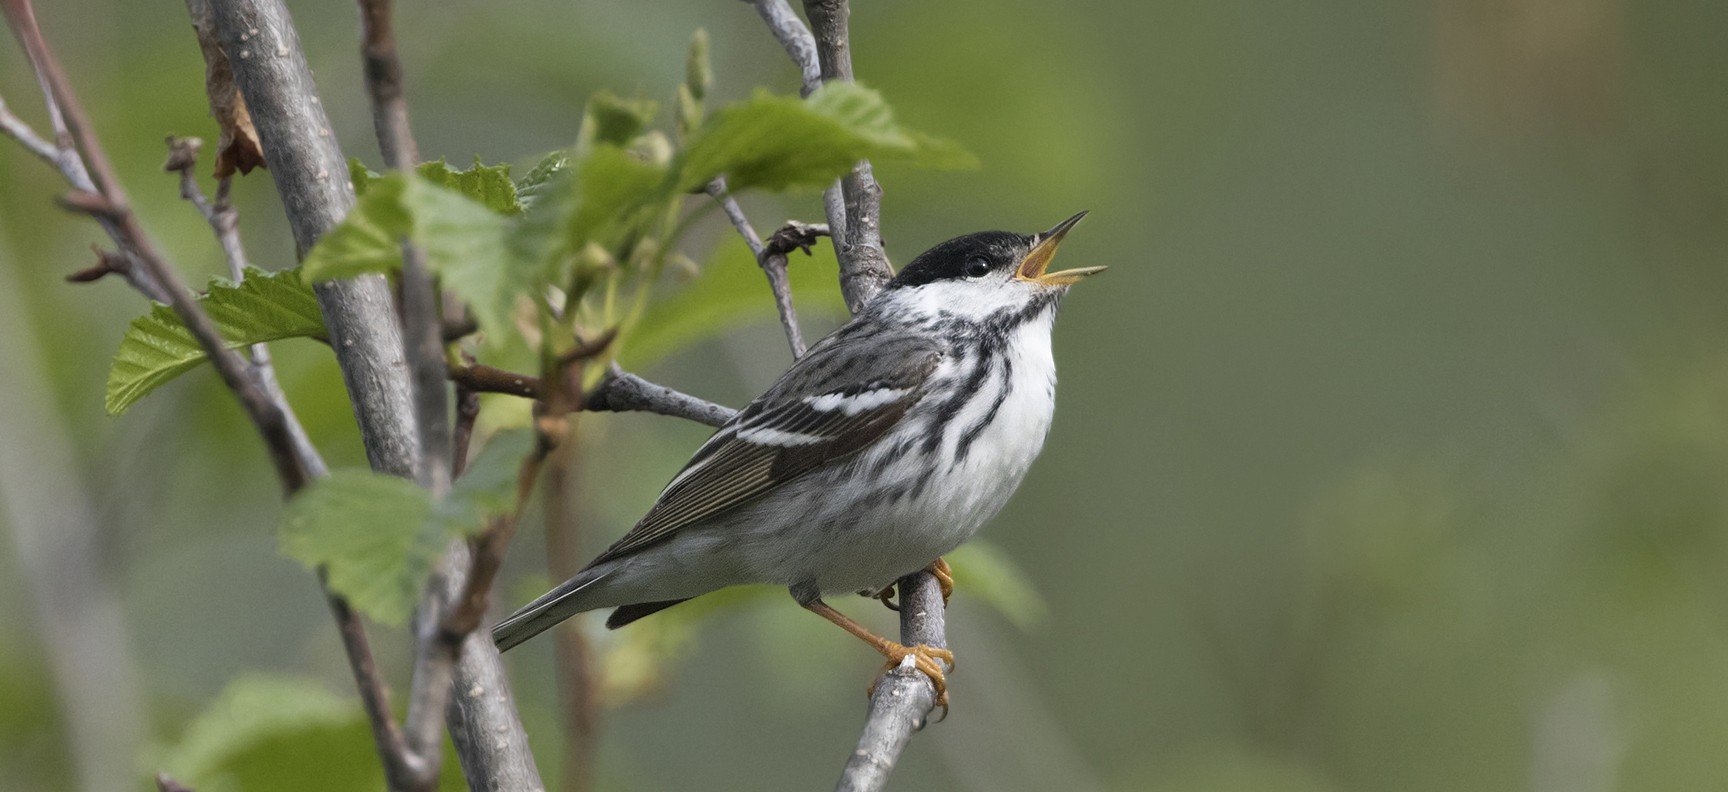 a blackpoll warbler singing on a branch